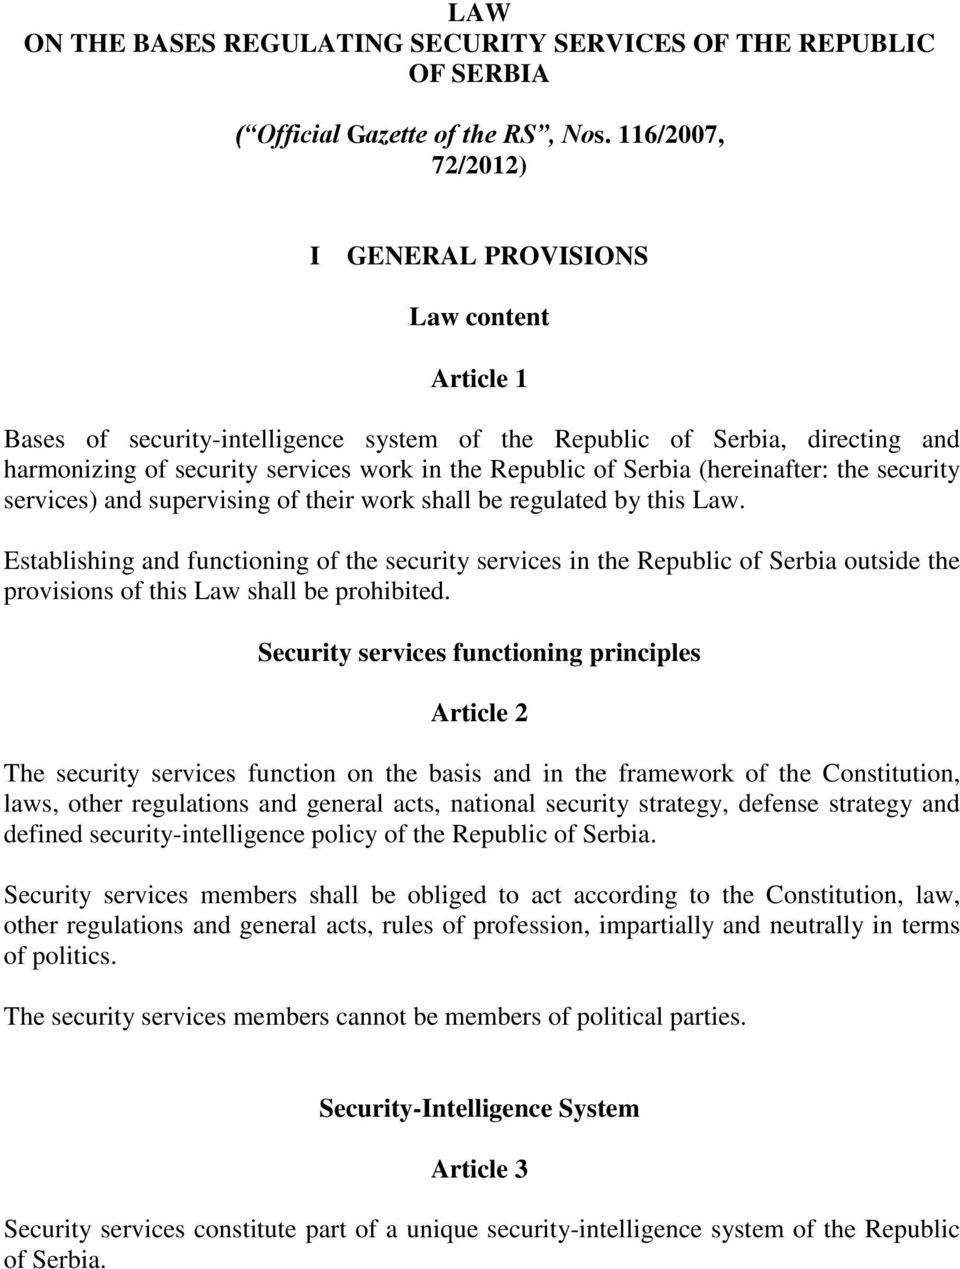 Serbia (hereinafter: the security services) and supervising of their work shall be regulated by this Law.